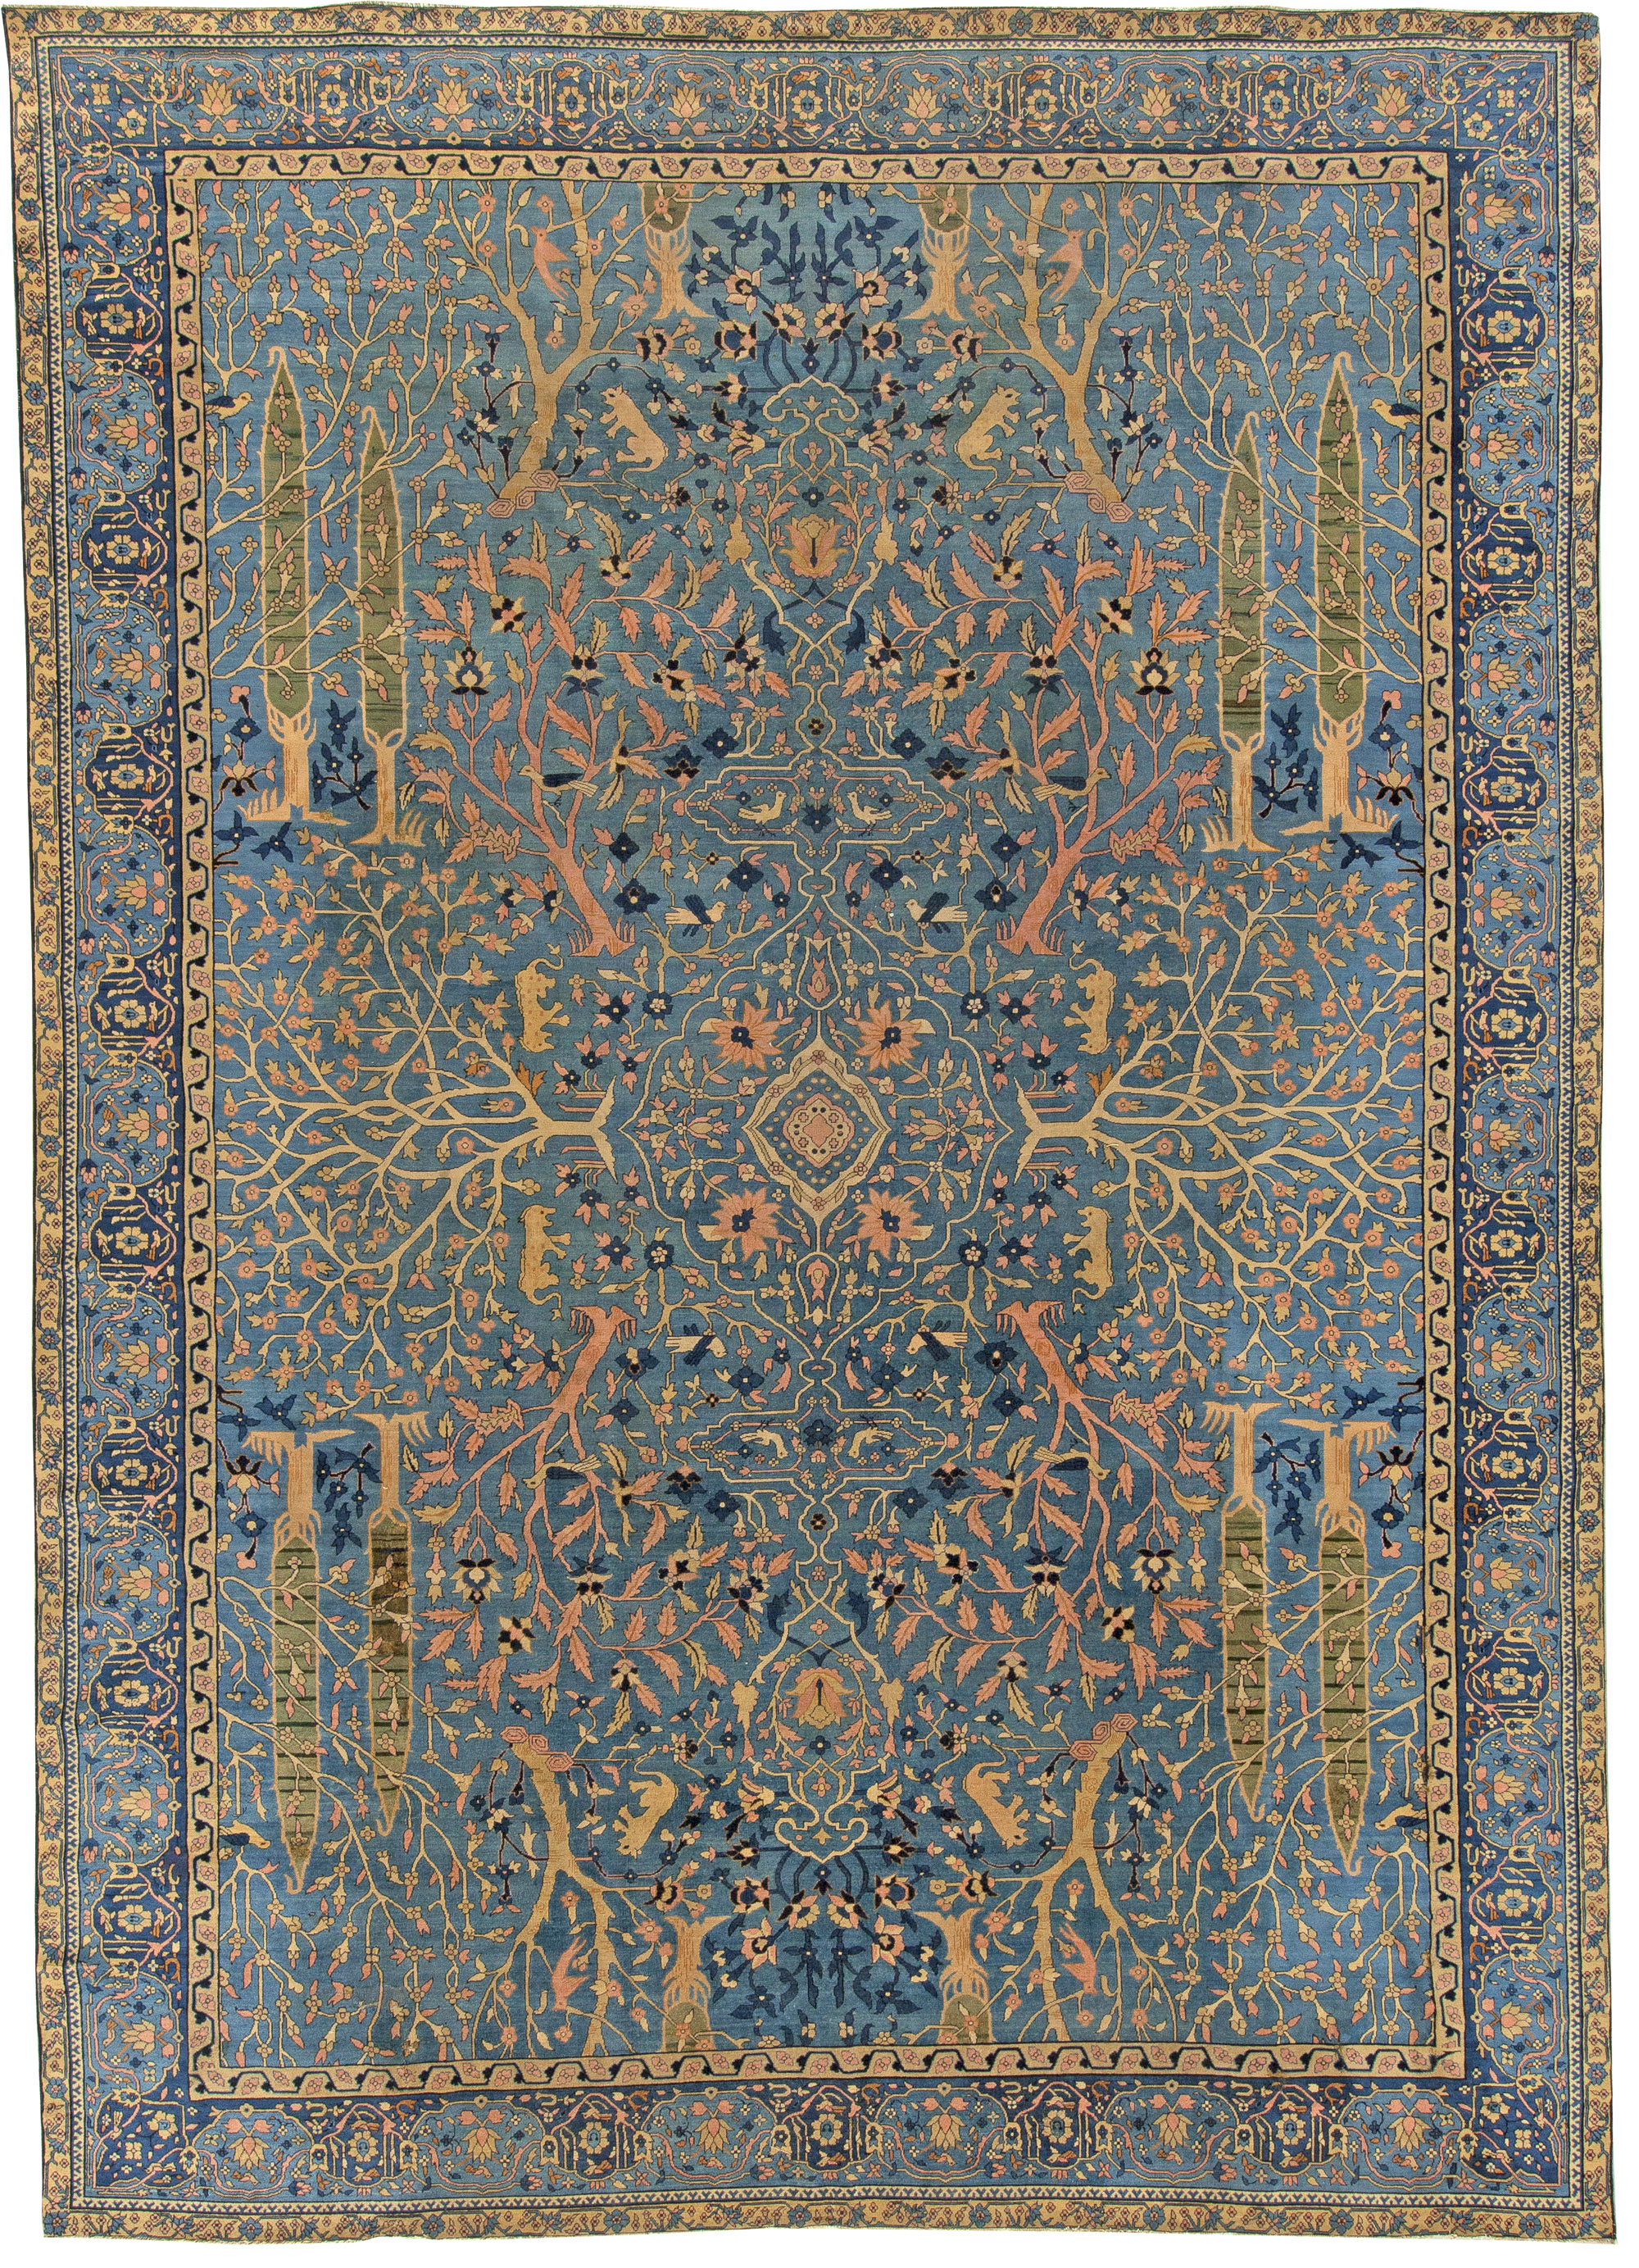 Antique Indian Rug Bb5490 By Dlb